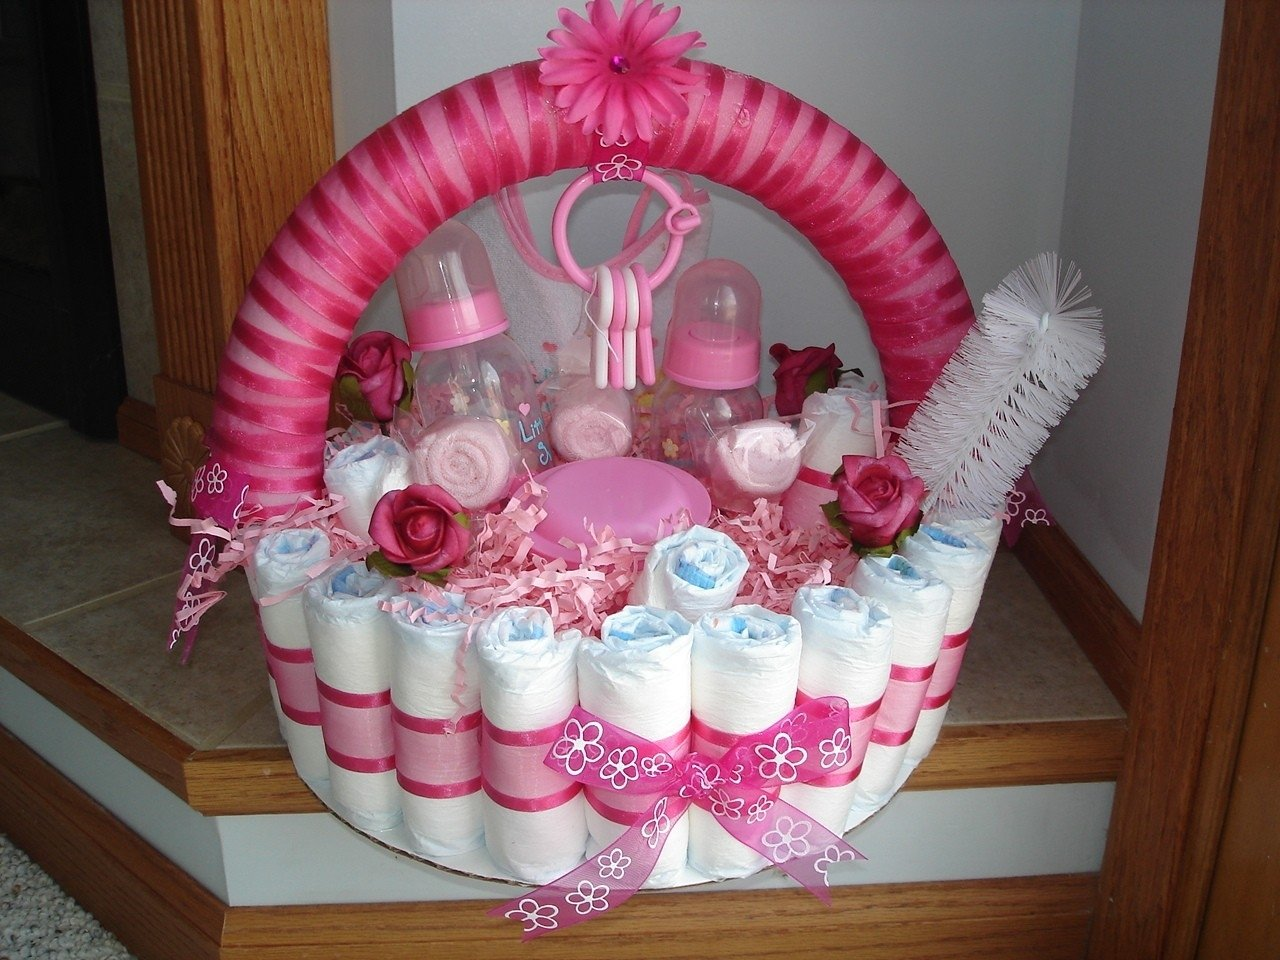 10 Pretty Diaper Ideas For Baby Shower Gift diaper ideas for baby shower gift omega center ideas for baby 2020